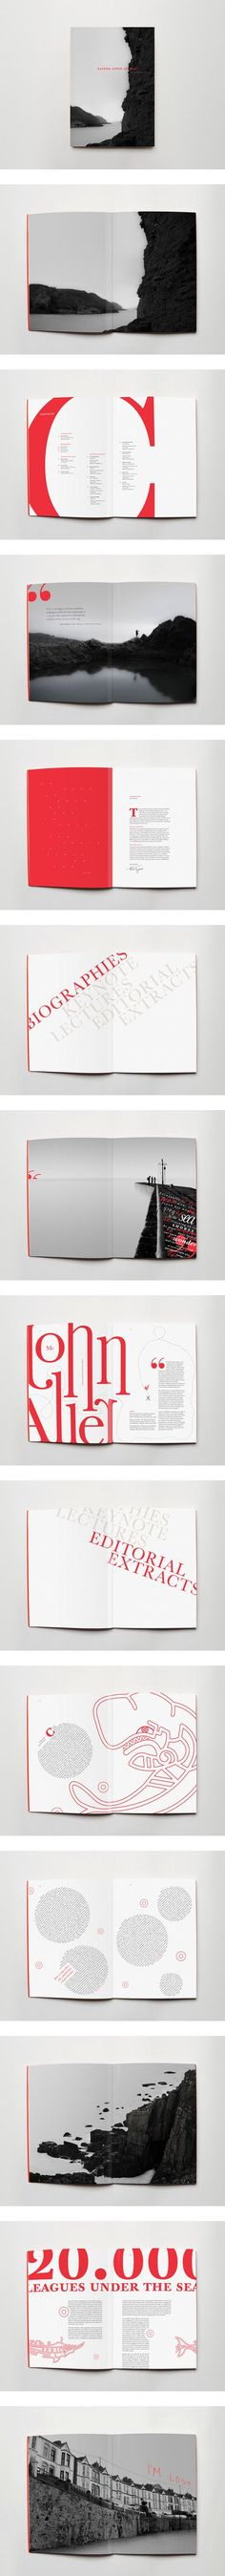 RNLI Catalogue - RNLI Catalogue Extremely interesting use of typography and layout design. RNLI Catalogue by Ciprian Robu Graphic Design Layouts, Brochure Design, Graphic Design Inspiration, Layout Design, Identity Design, Typography Layout, Graphic Design Typography, Lettering, Graphisches Design